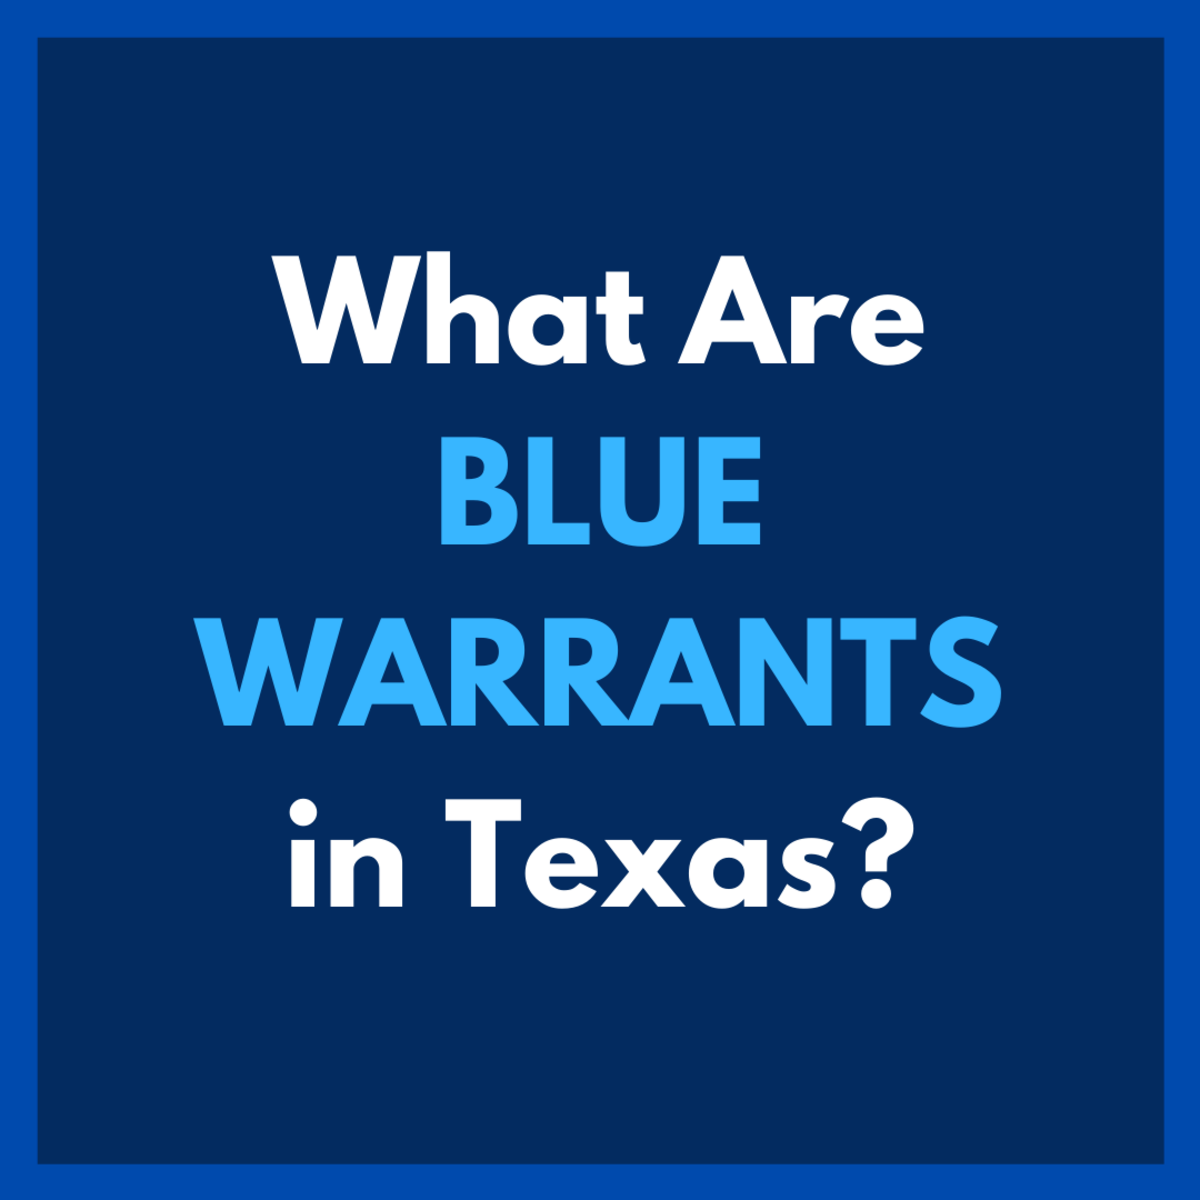 Texas' blue warrants are executed for the arrest of parolees who have violated their parole or who are about to violate their parole.